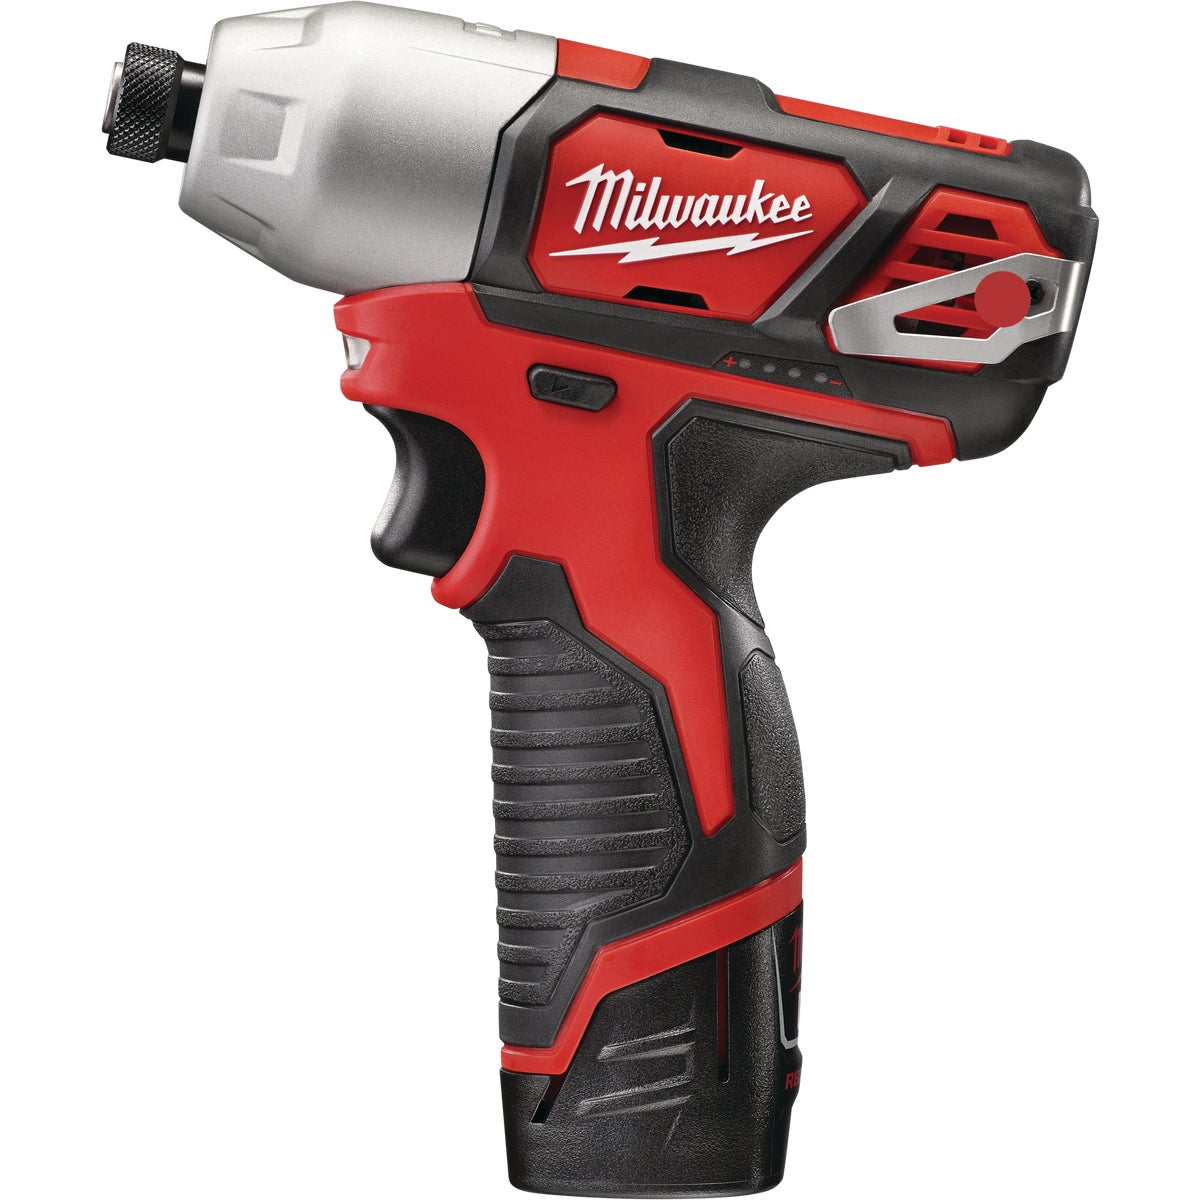 12V IMPACT DRIVER KIT - 2462-22 by Milwaukee Elec Tool